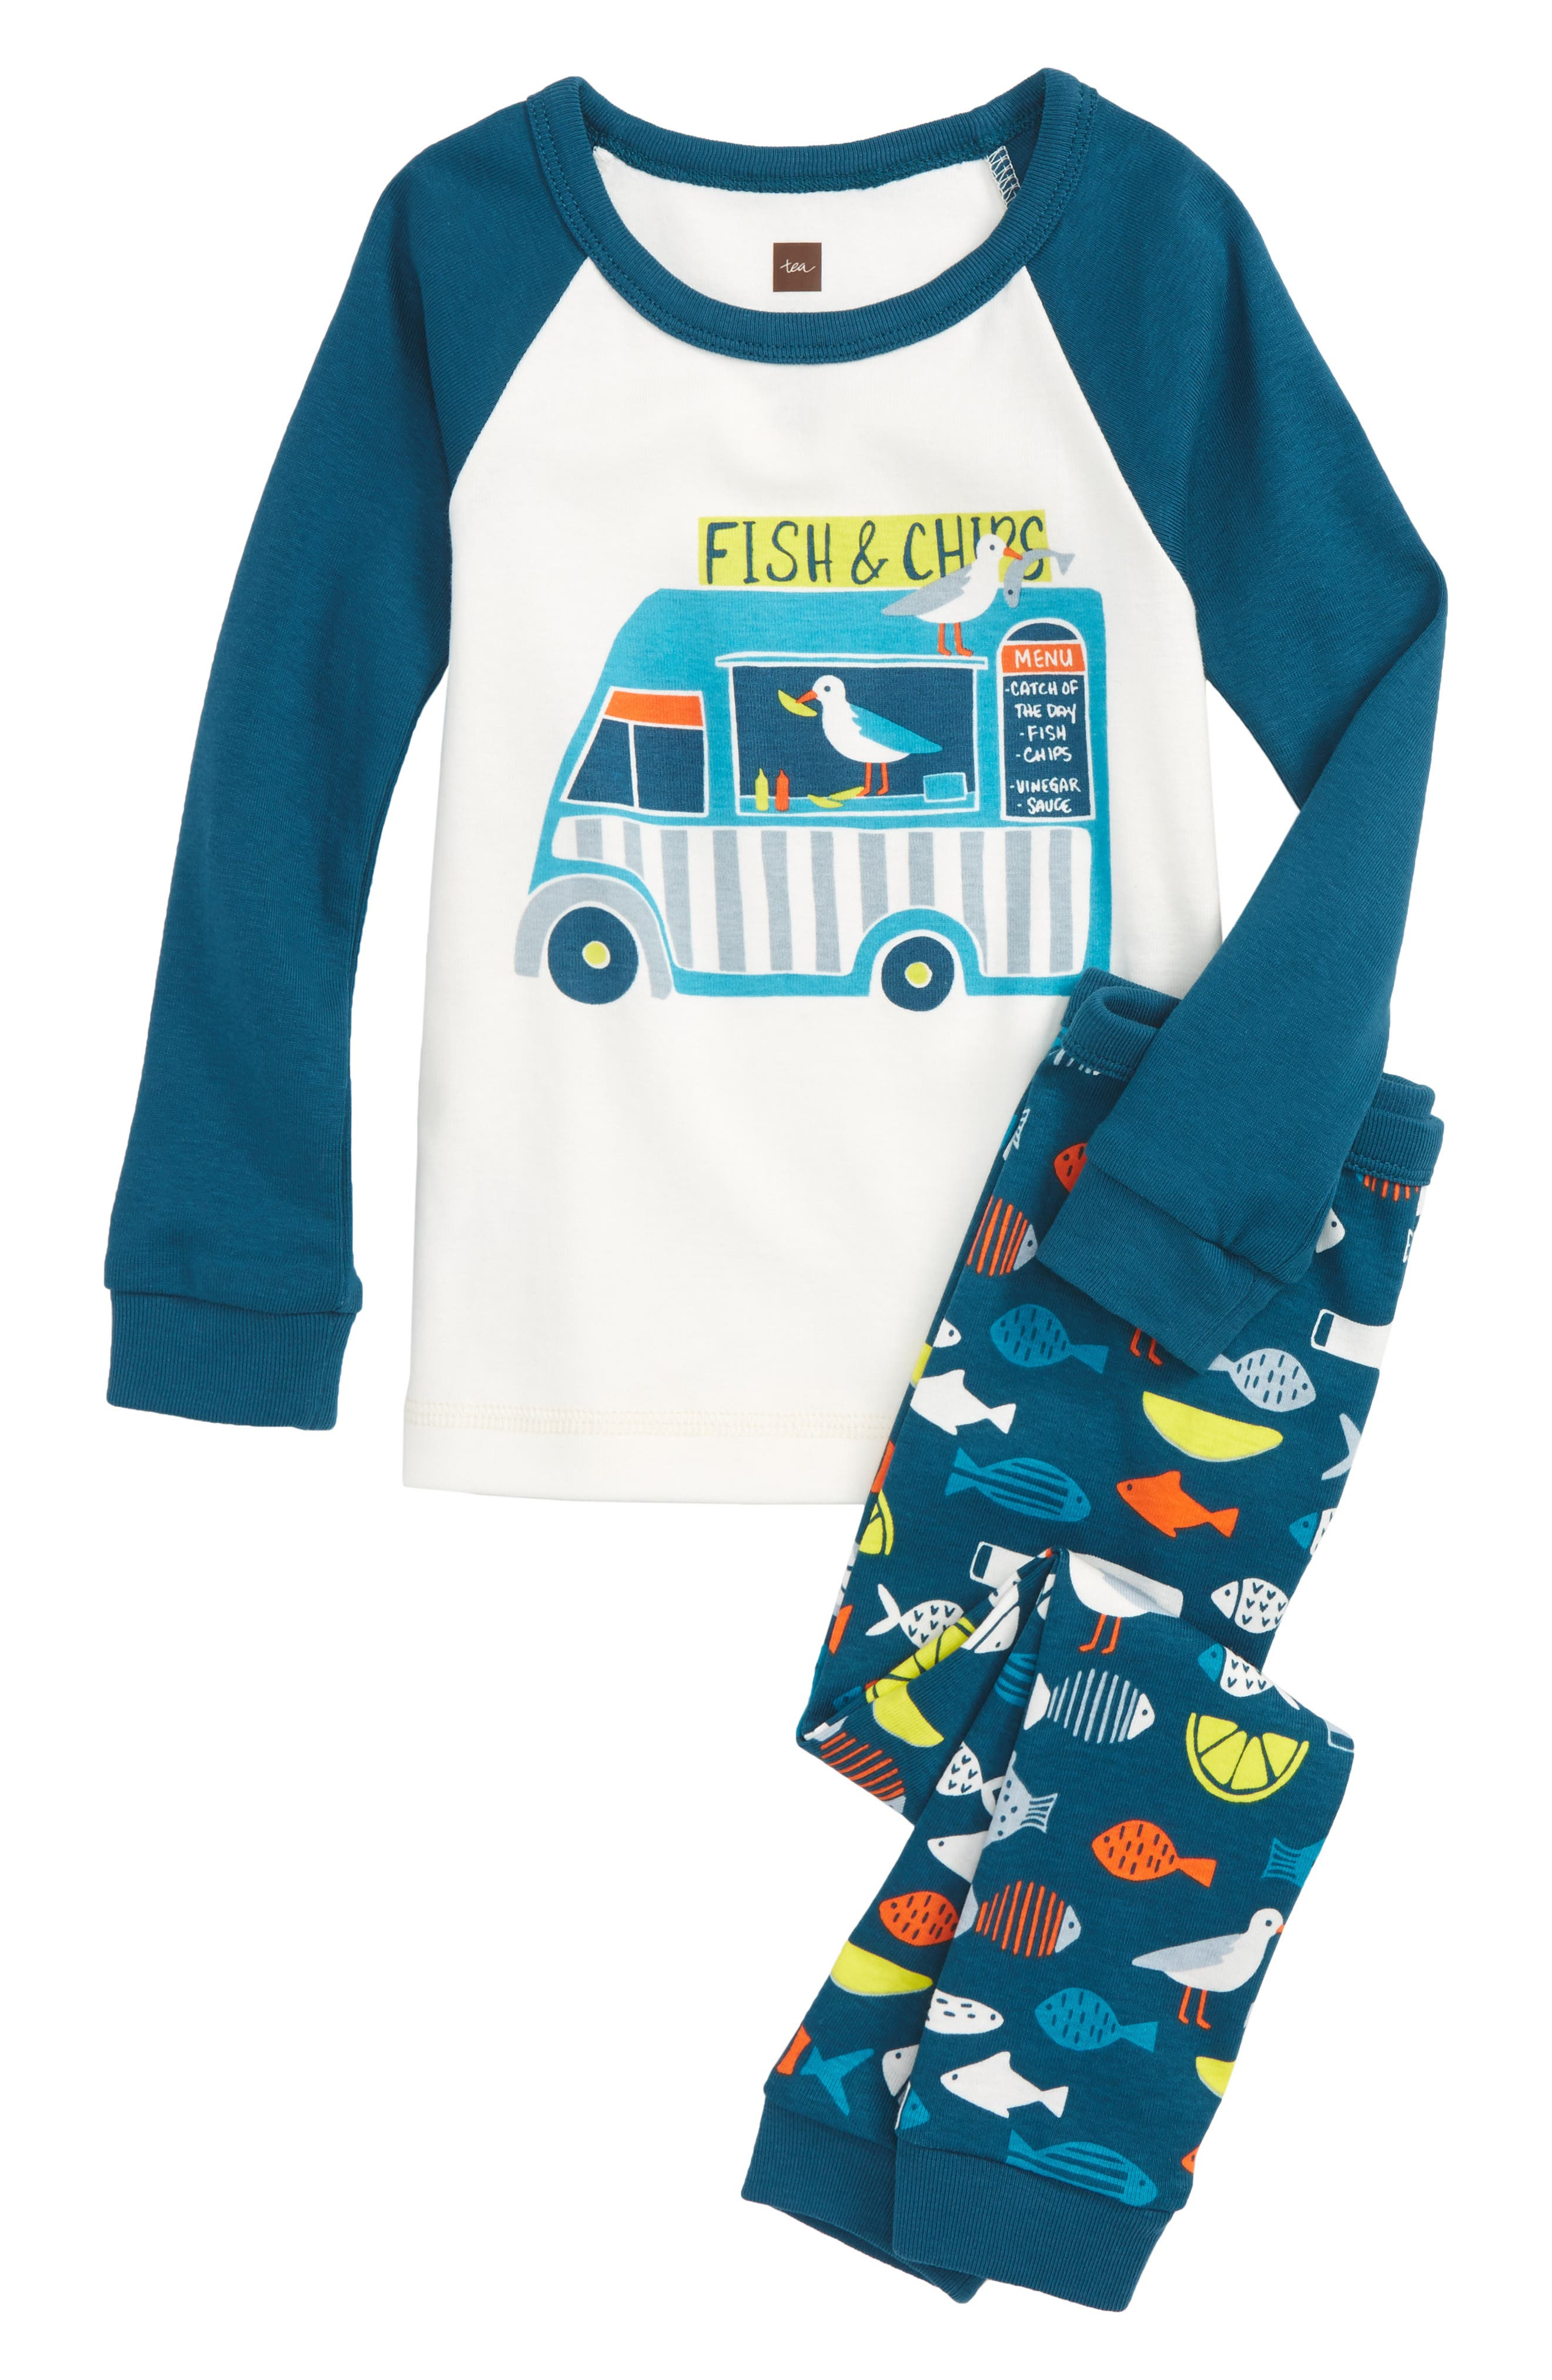 Main Image - Tea Collection Fish & Chips Fitted Two-Piece Pajamas (Toddler Boys, Little Boys & Big Boys)